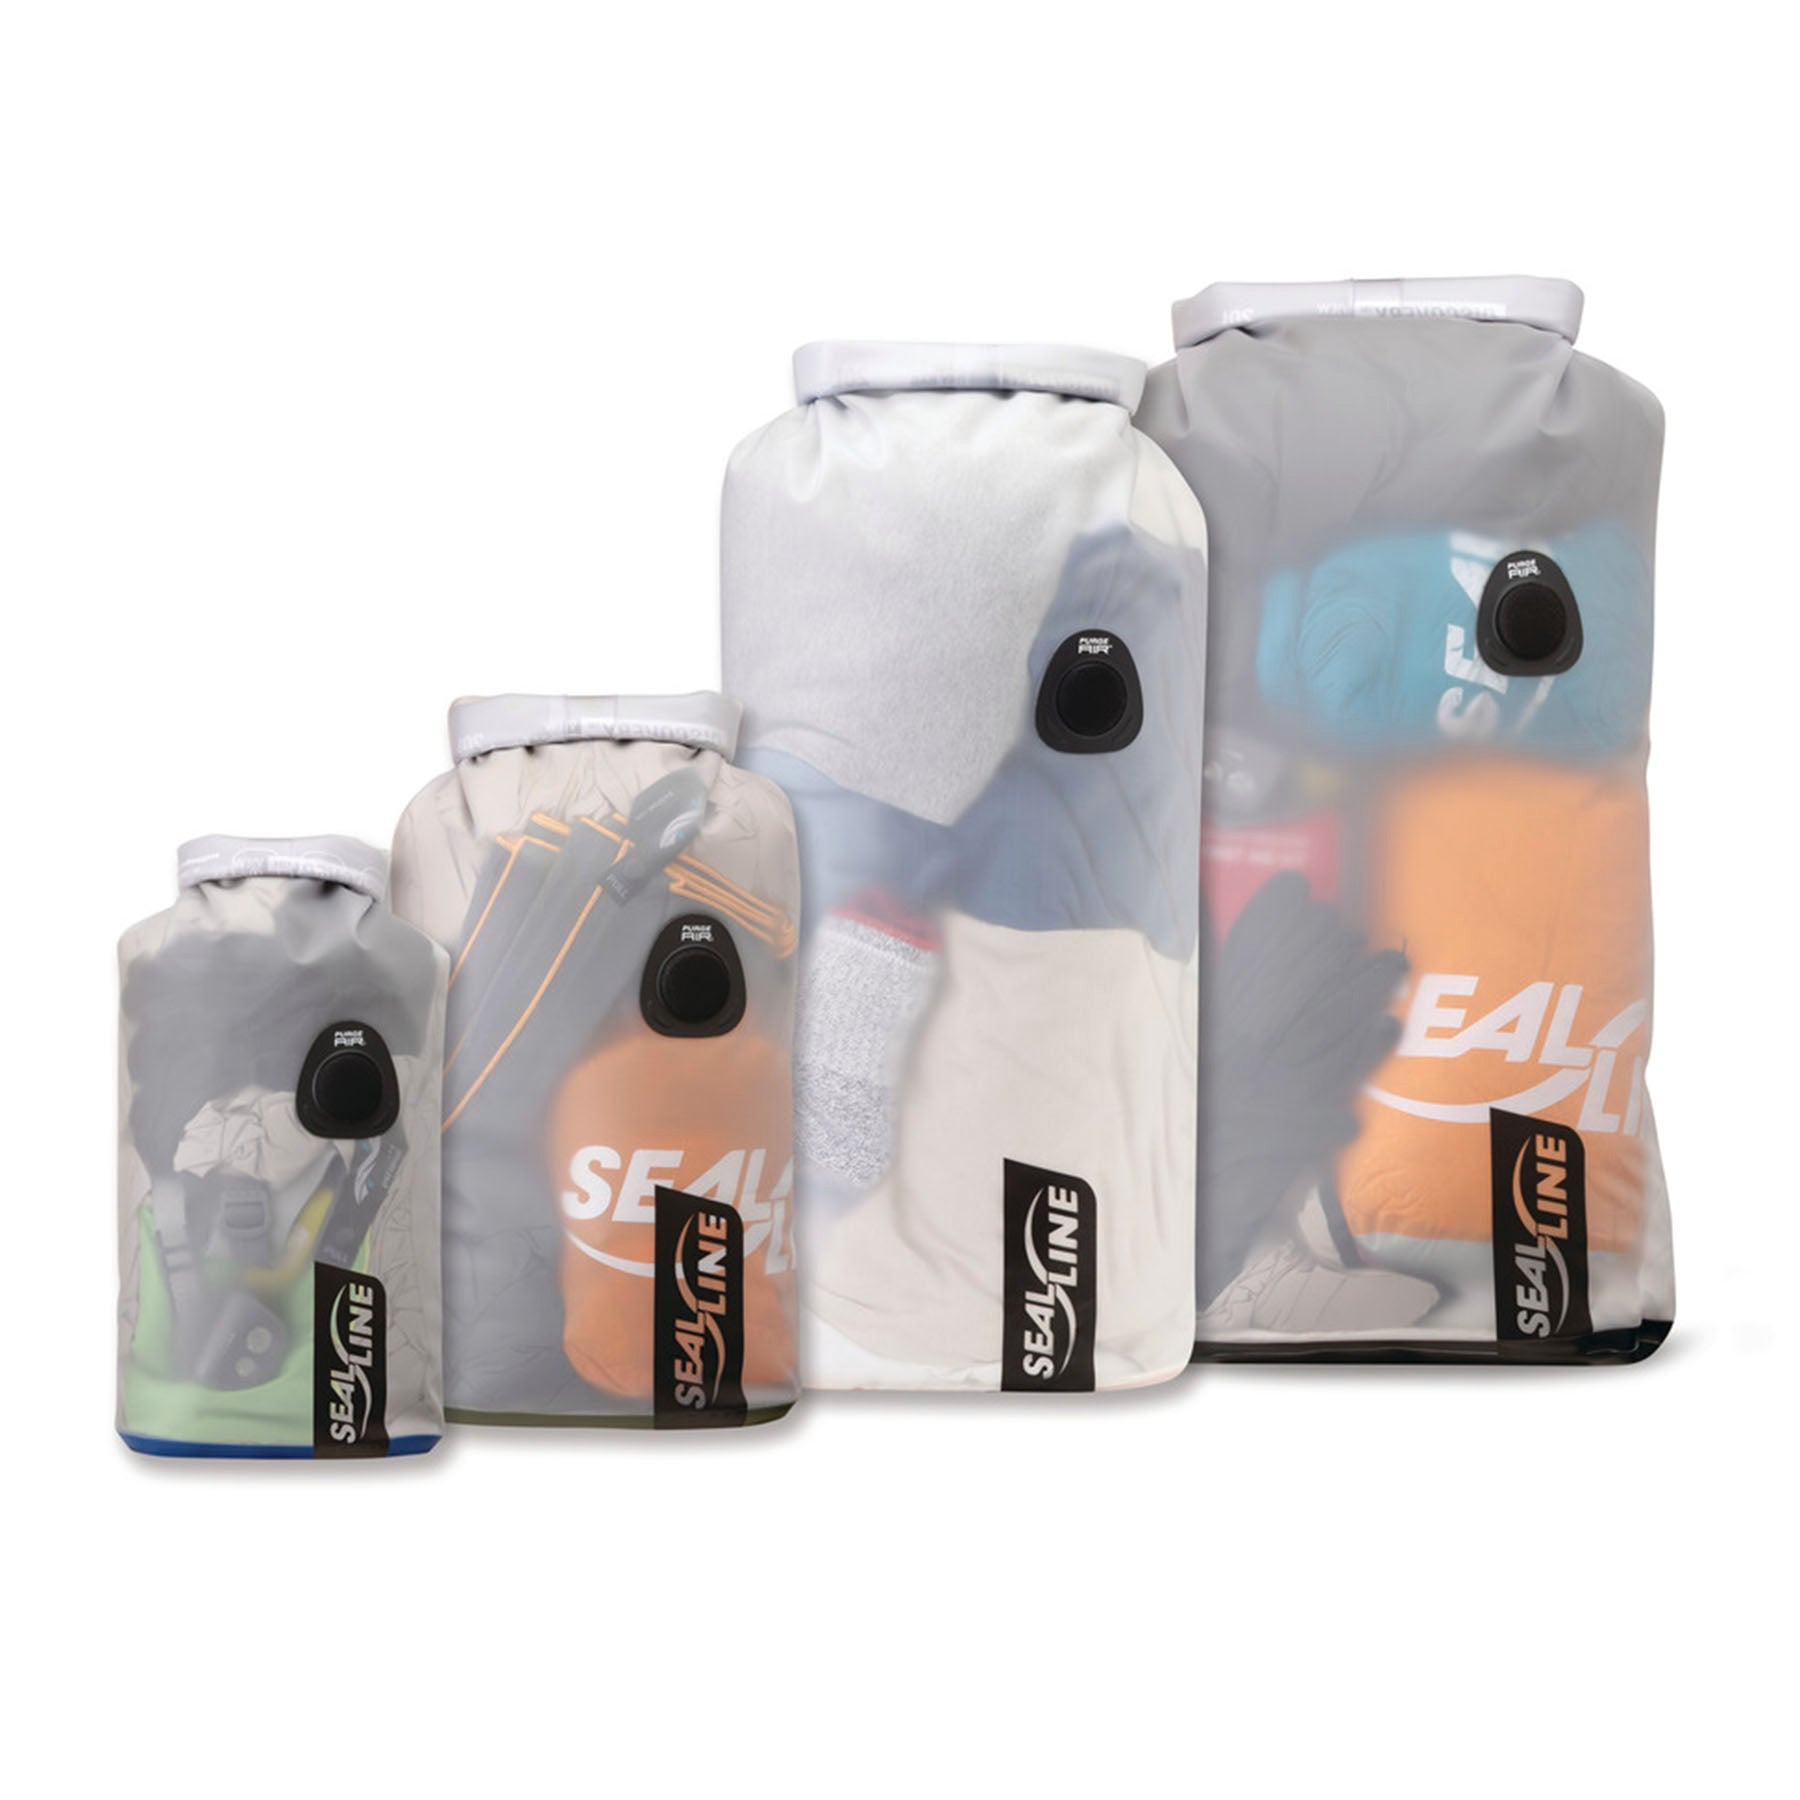 The full line of discovery dry bags